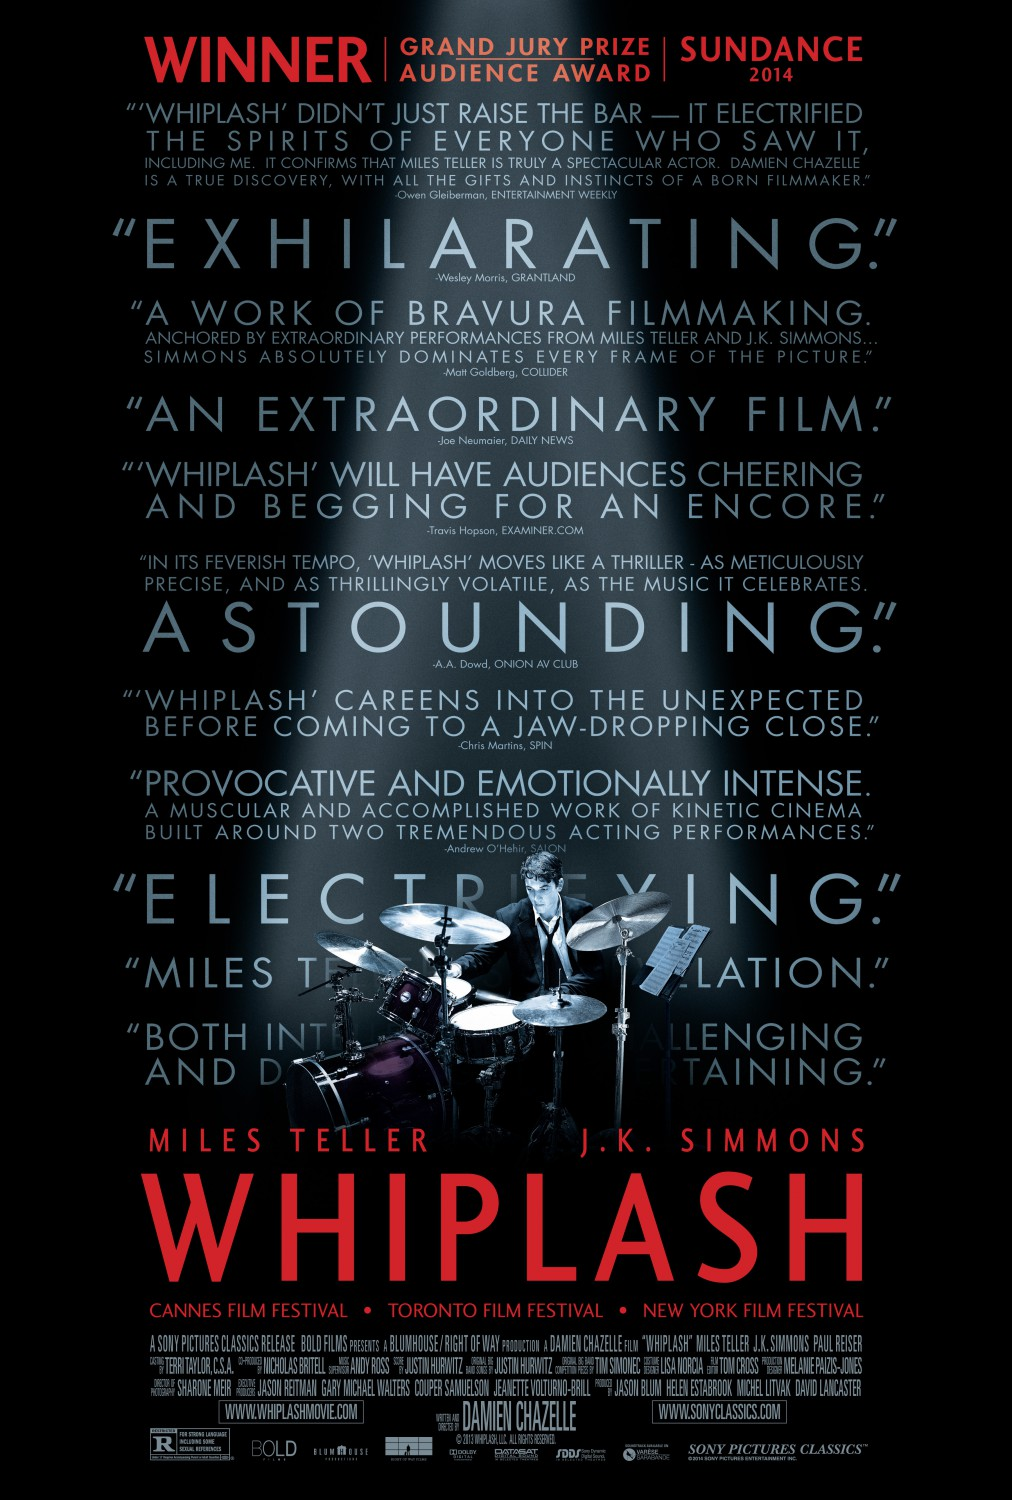 whiplash-movie-poster